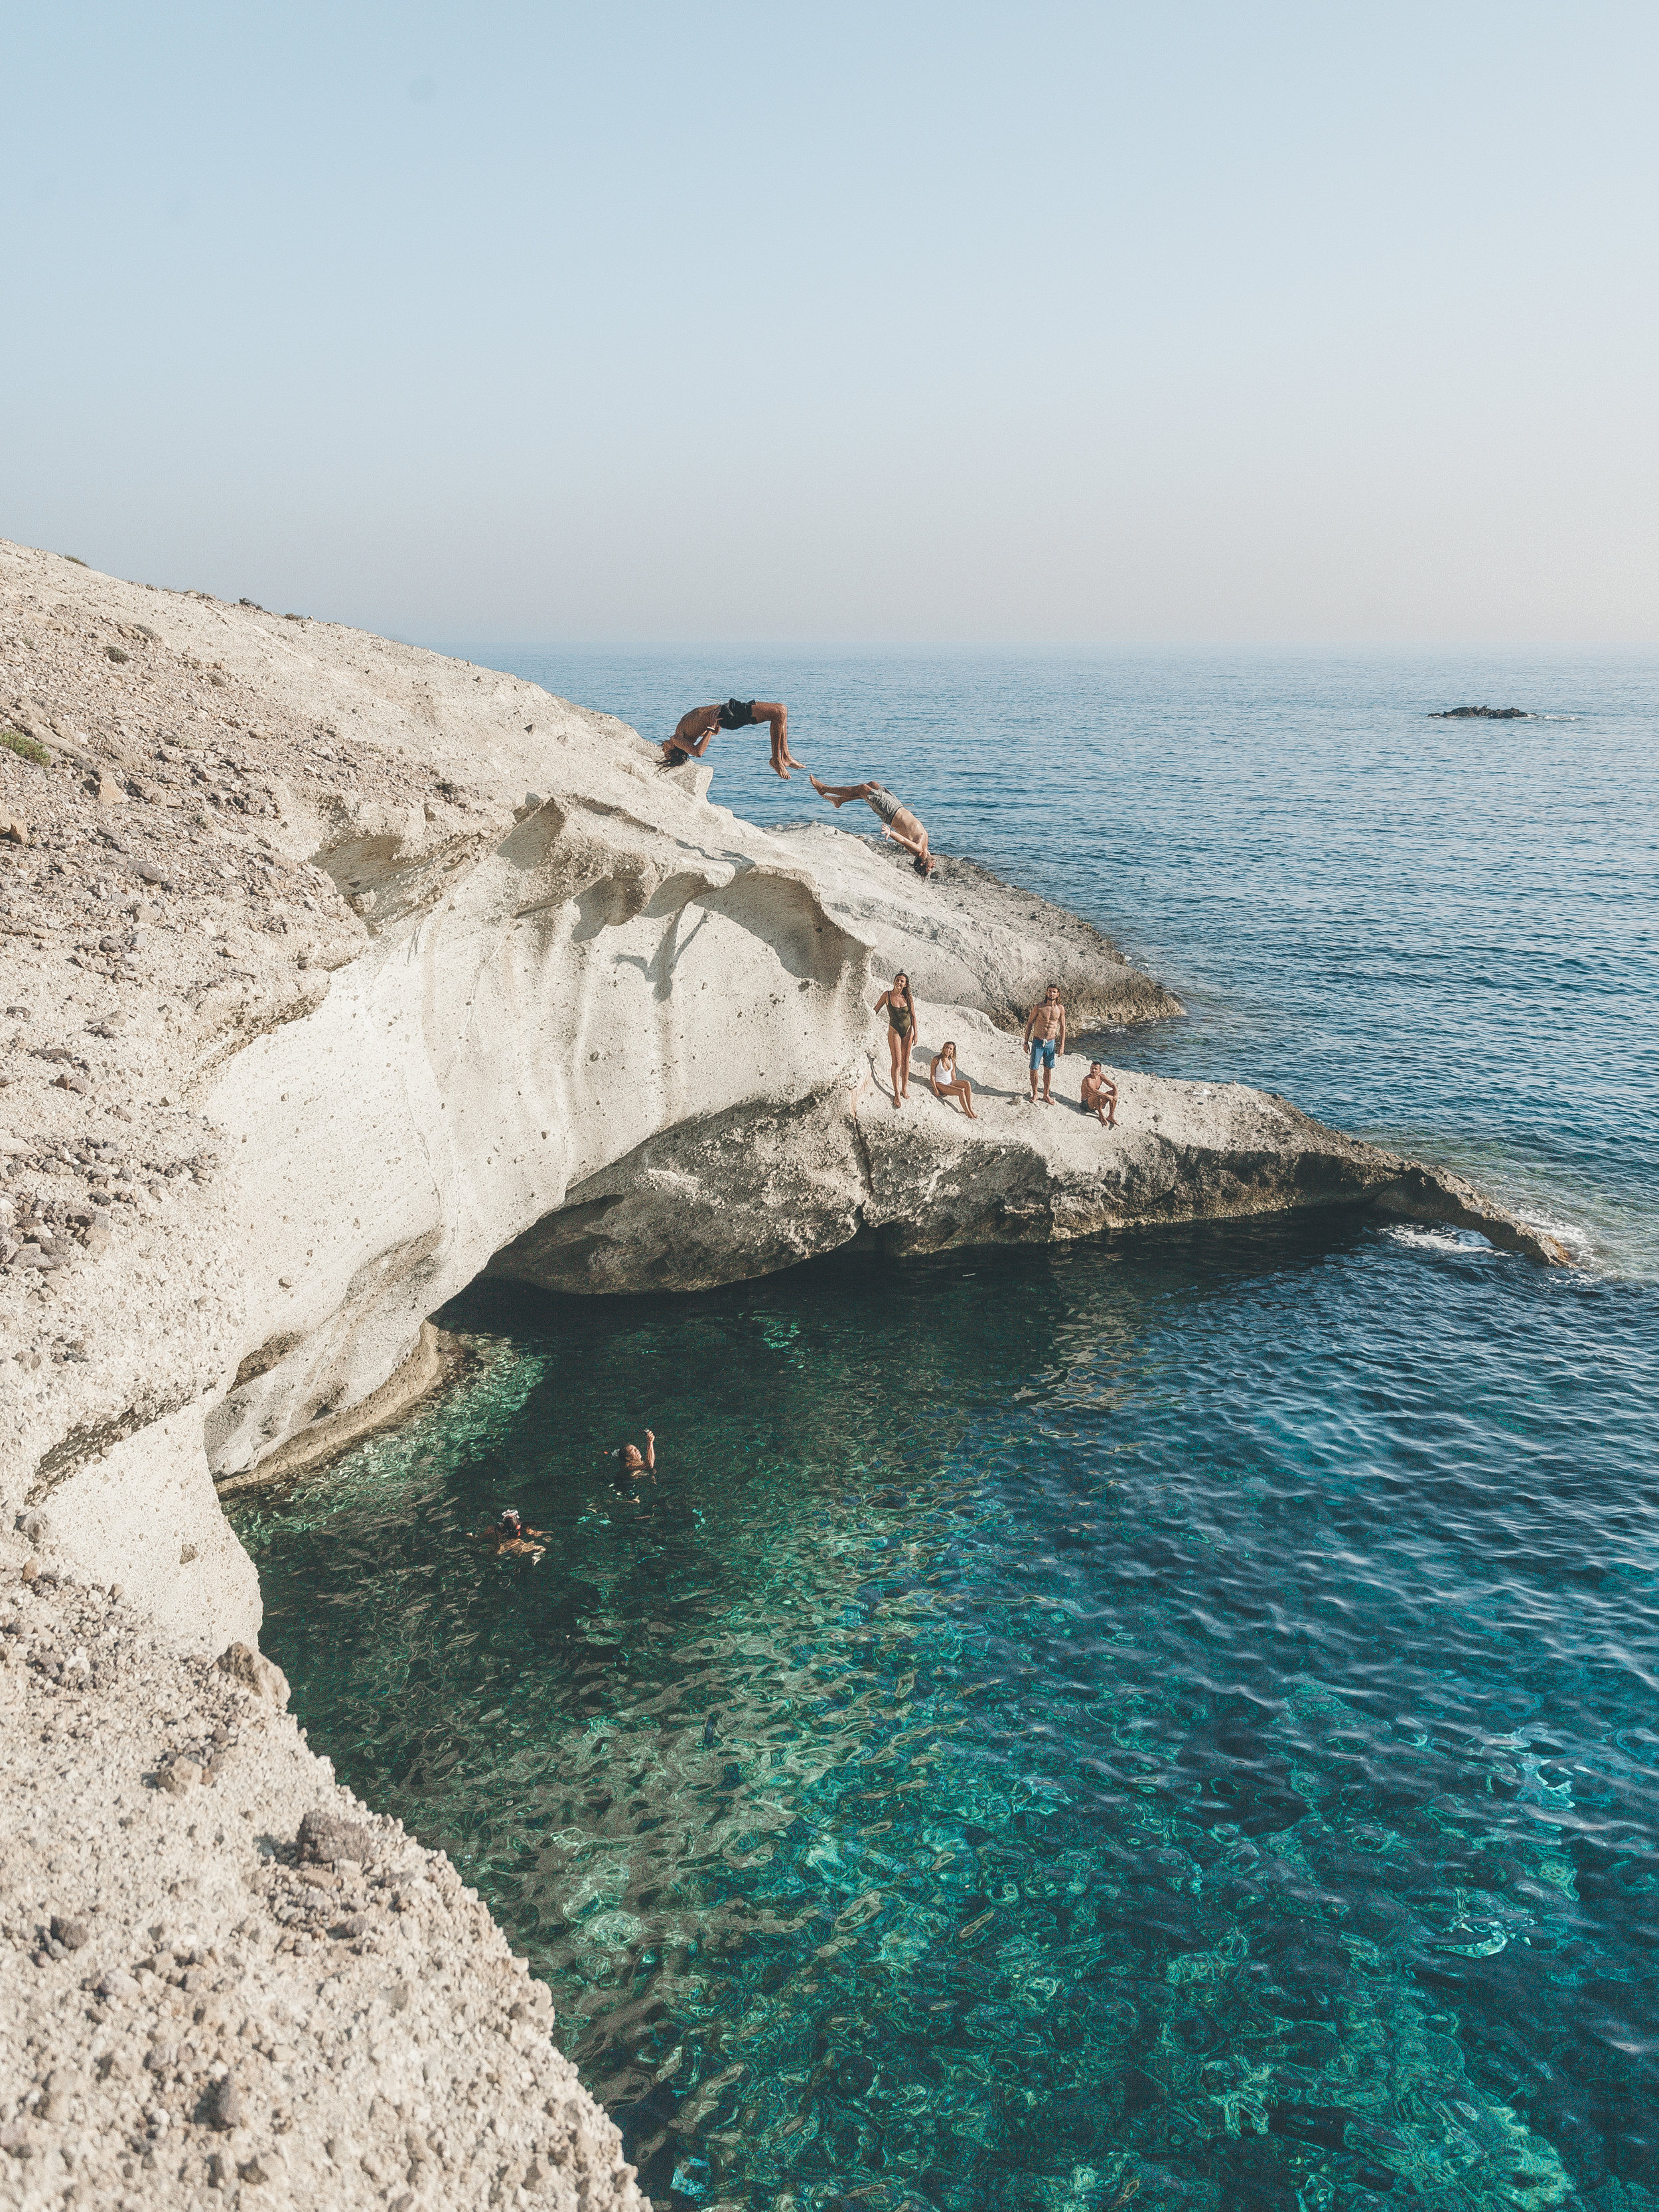 This is the cliff jump that looks like Milos. Show this picture to the skipper at the port on Paros, worth the boat trip for a hang out here for sure!  Anti-Paros, July '17.